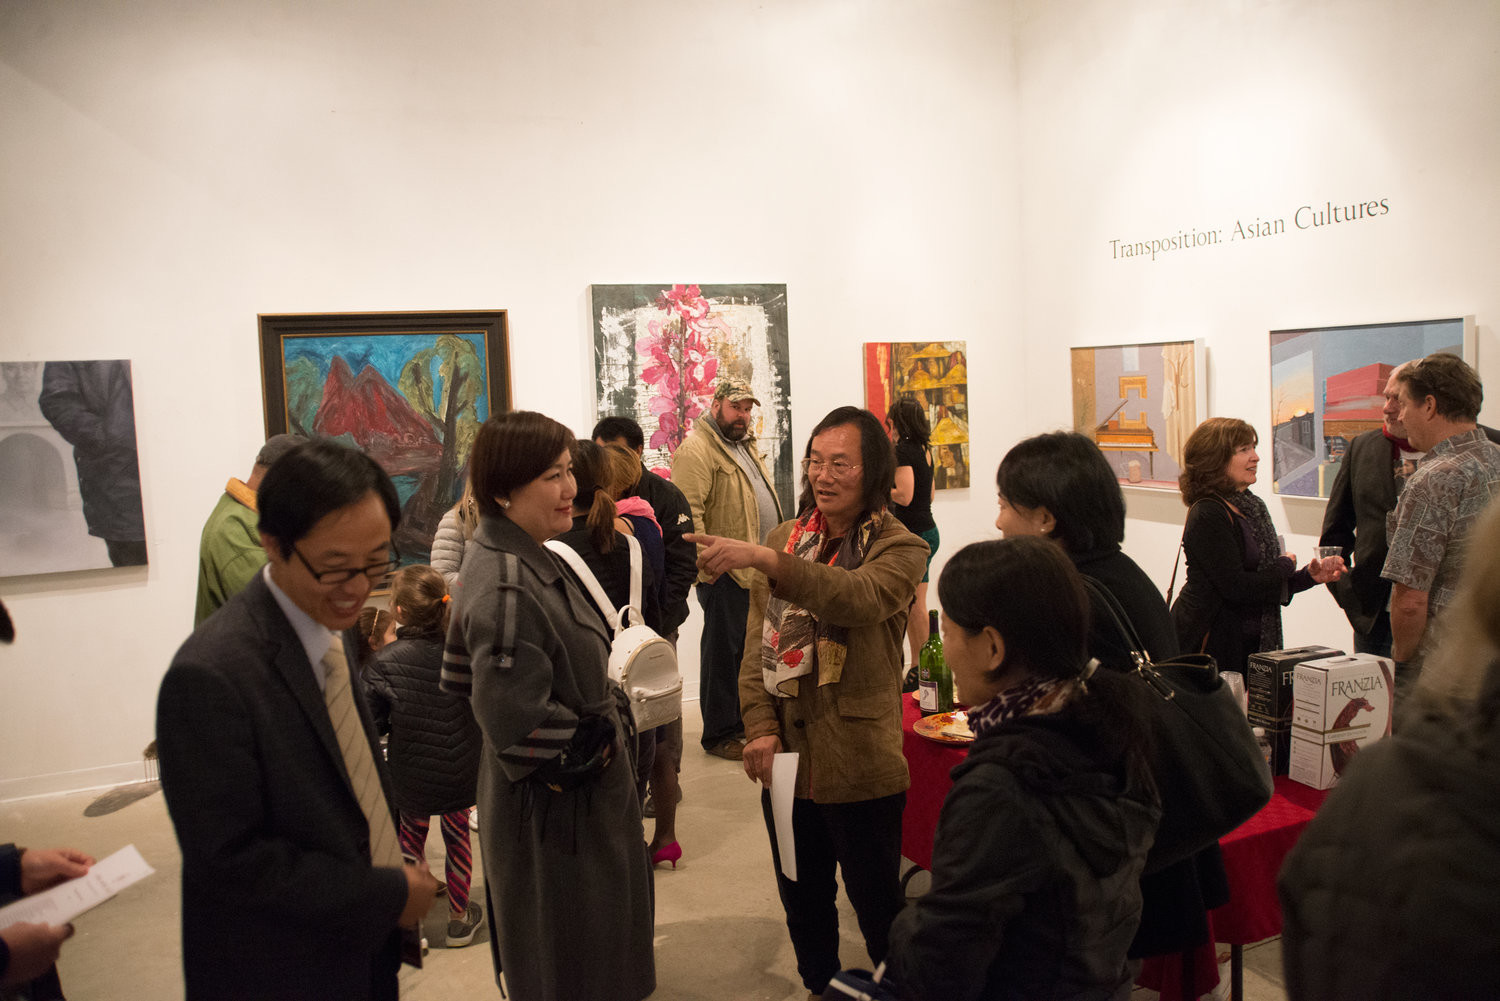 The opening reception at the Linda Matney Fine Art Gallery